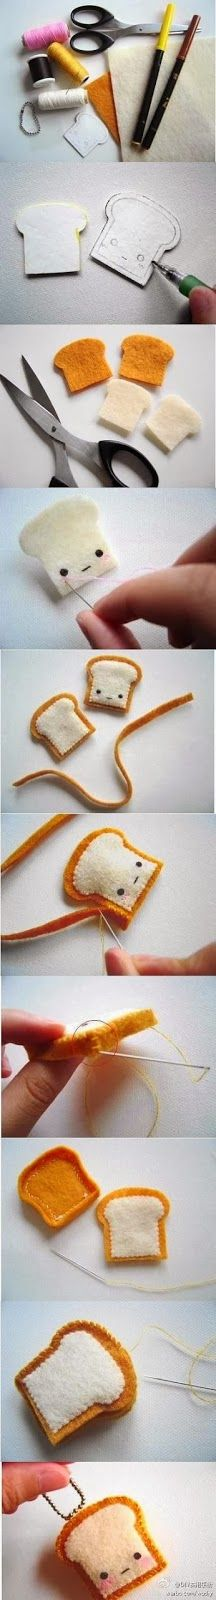 ★ Epinglé par www.la-petite-epi... Tutos et fournitures pour le Do It Yourself ★DIY Cute Little Bread Guys. I've pinned this before but I don't remember if it had a tutorial